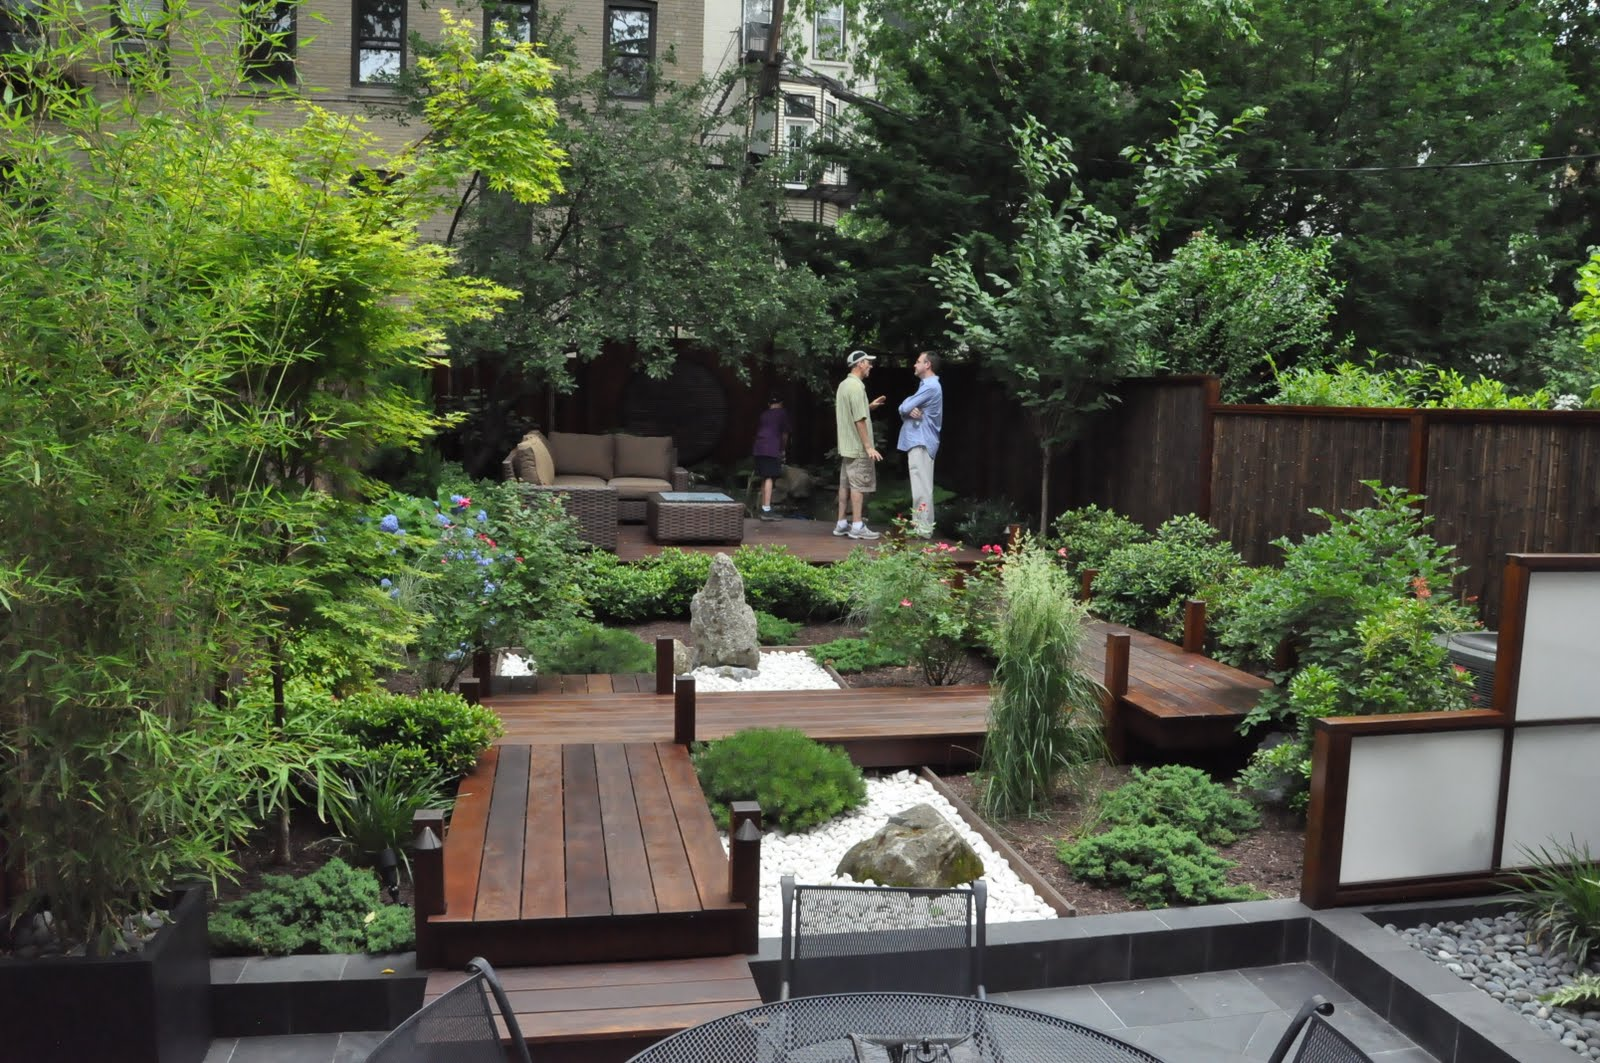 Small backyard japanese garden ideas ztil news for Japanese small garden design ideas